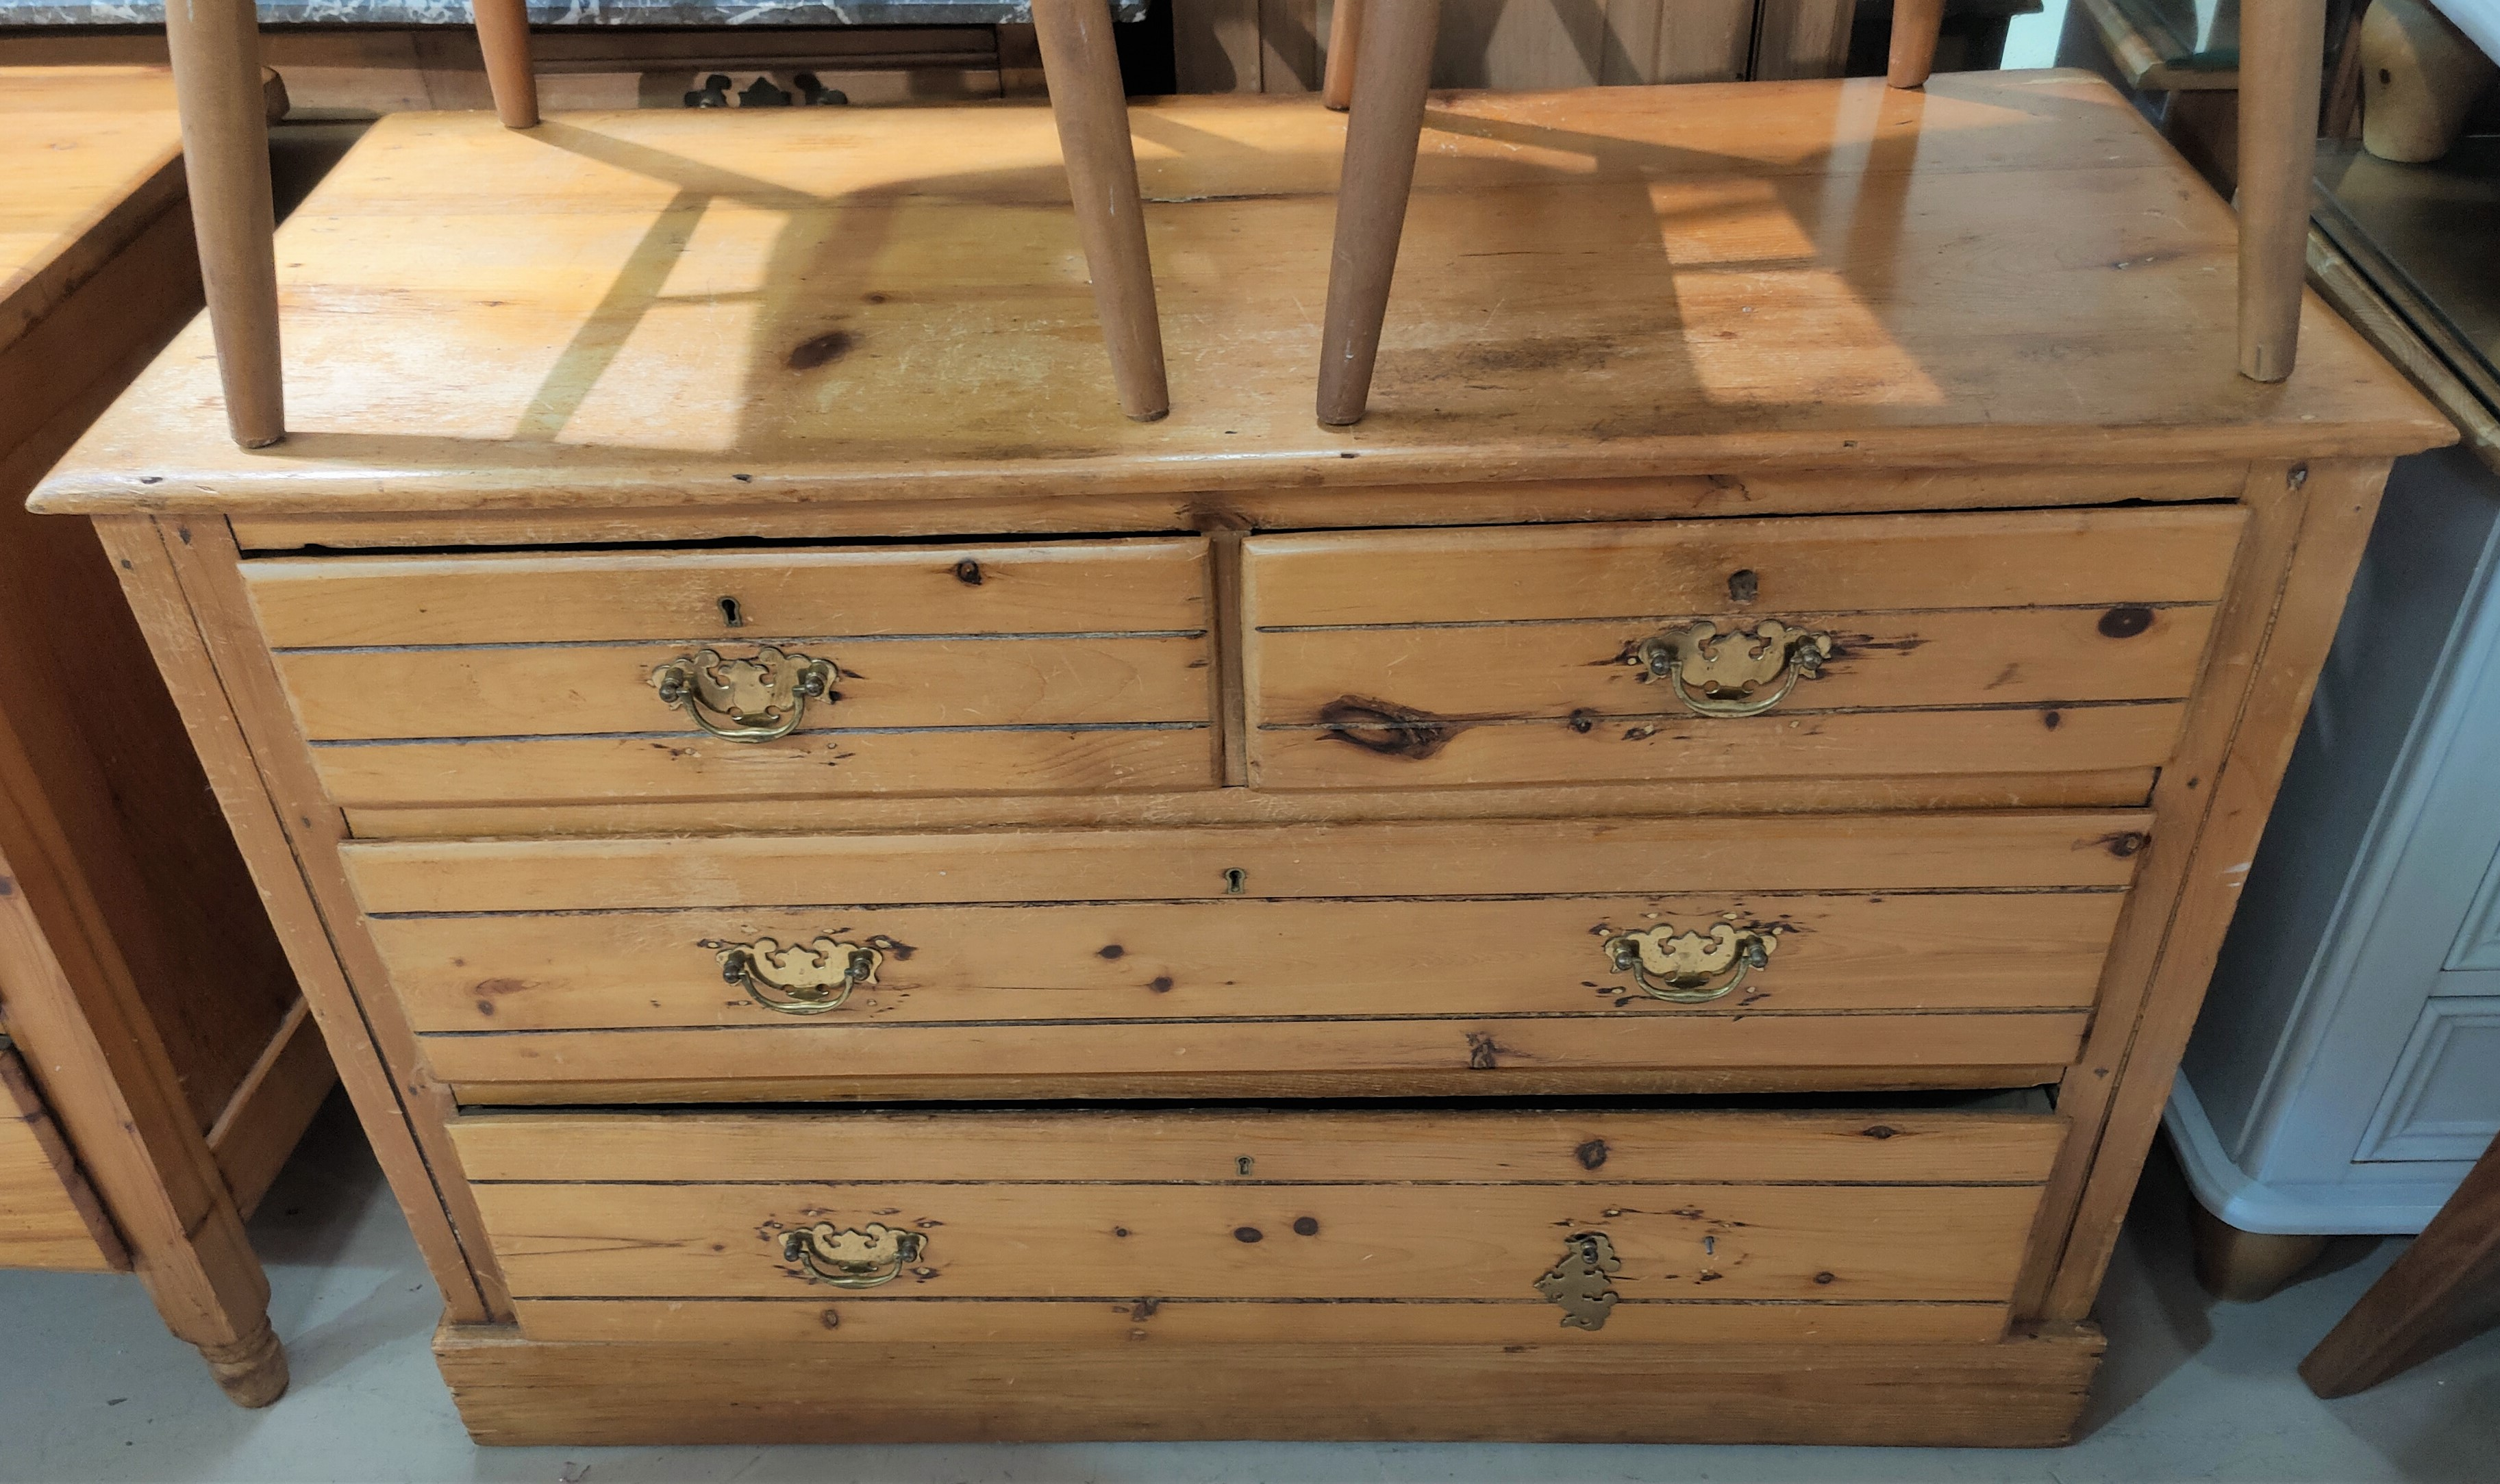 An Edwardian stripped pine chest of 2 long and 2 short drawers